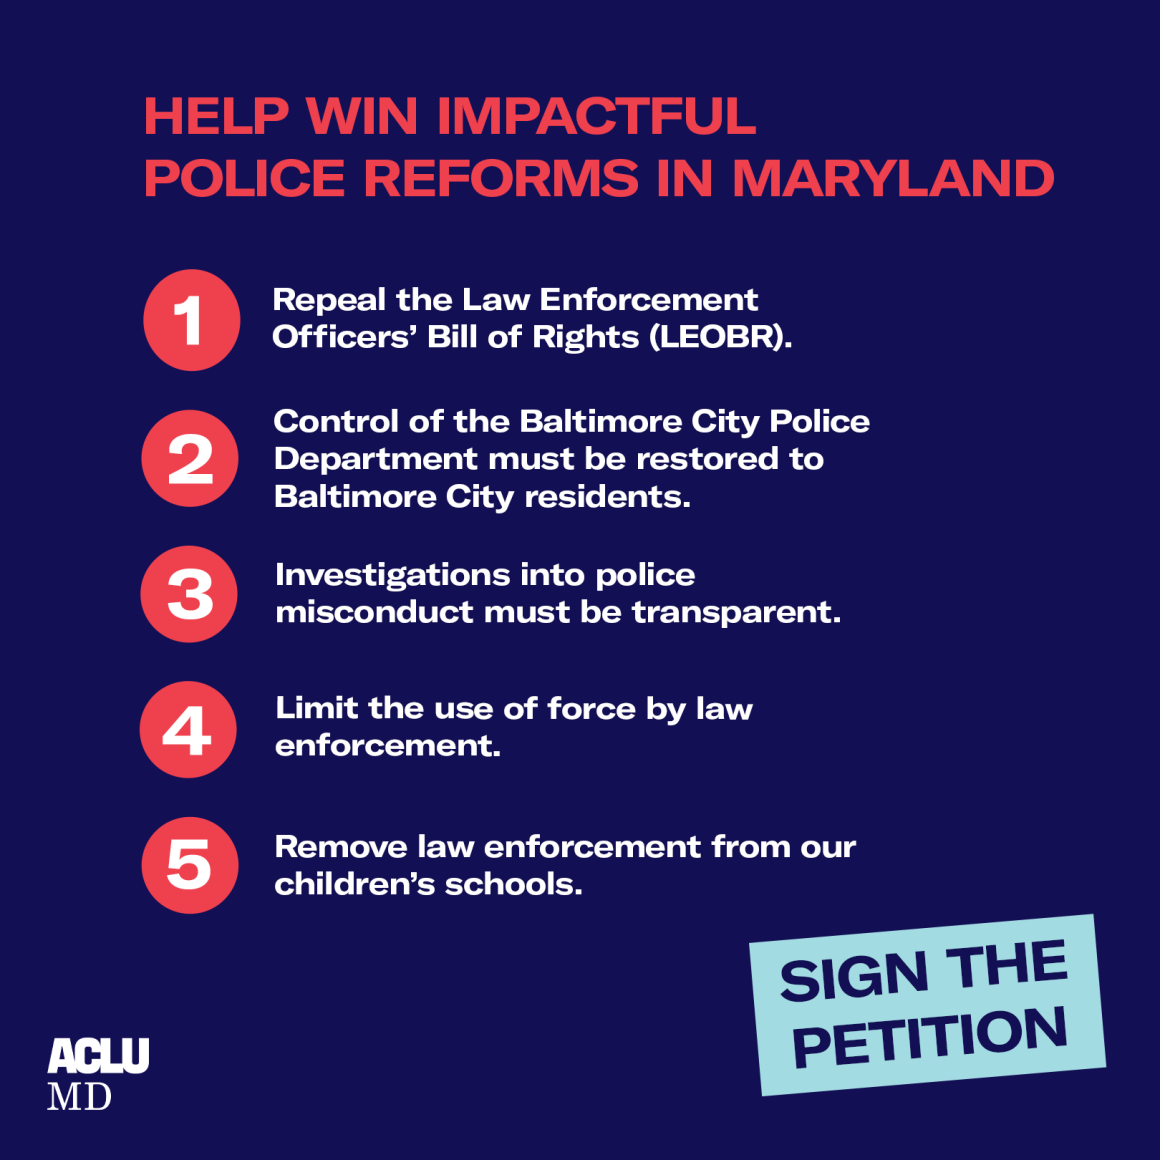 Help win impactful police reforms in Maryland - Sign the petition